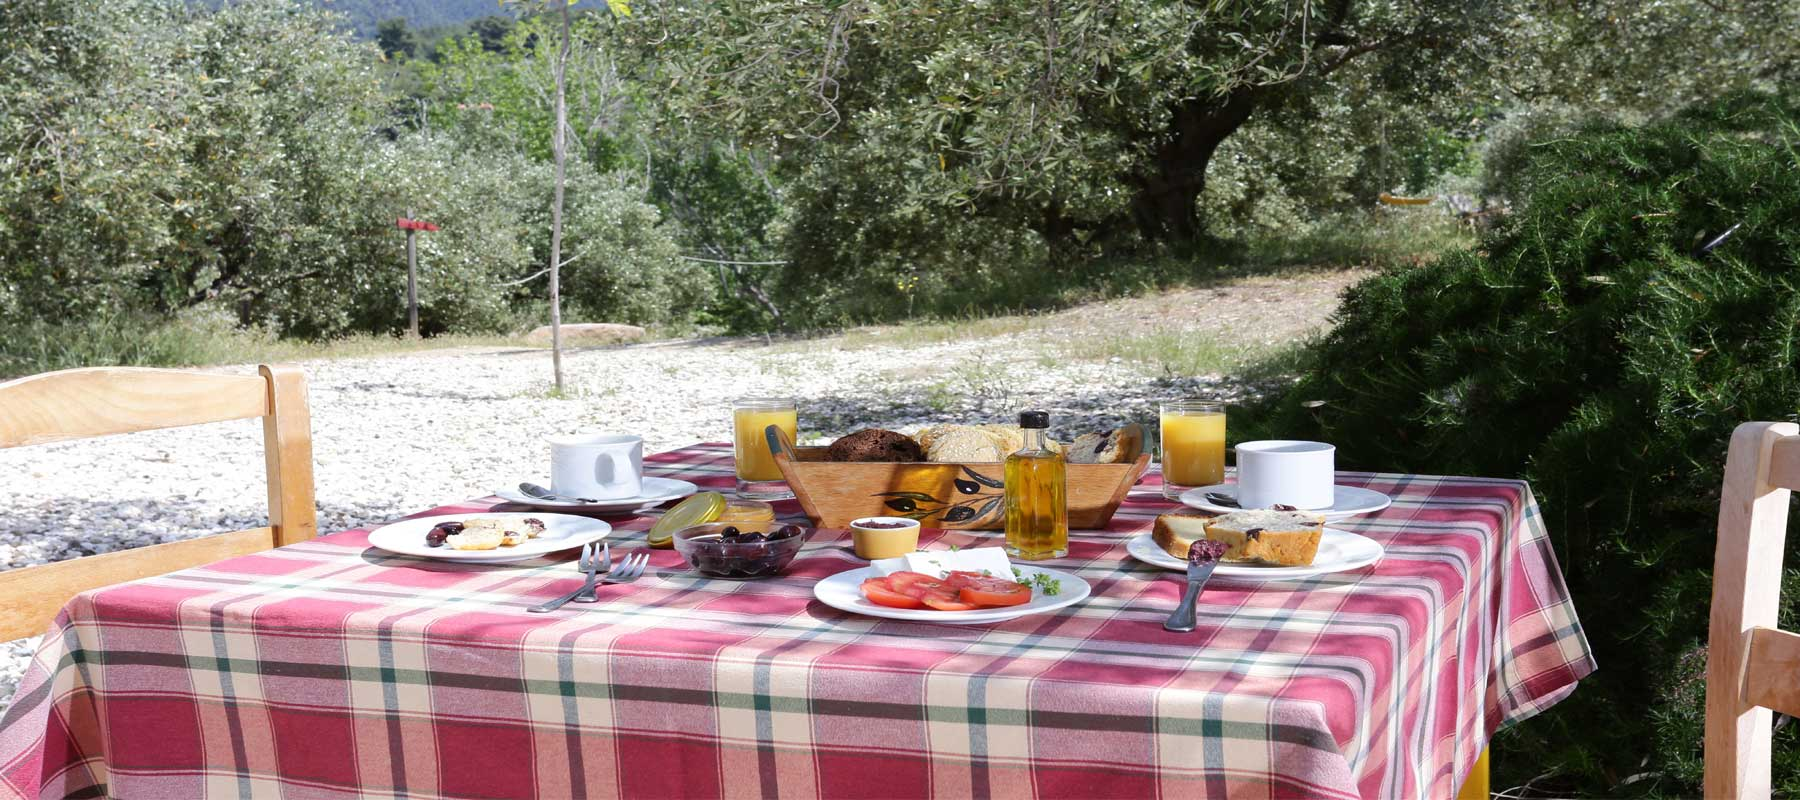 Greek breakfast uder the olive trees